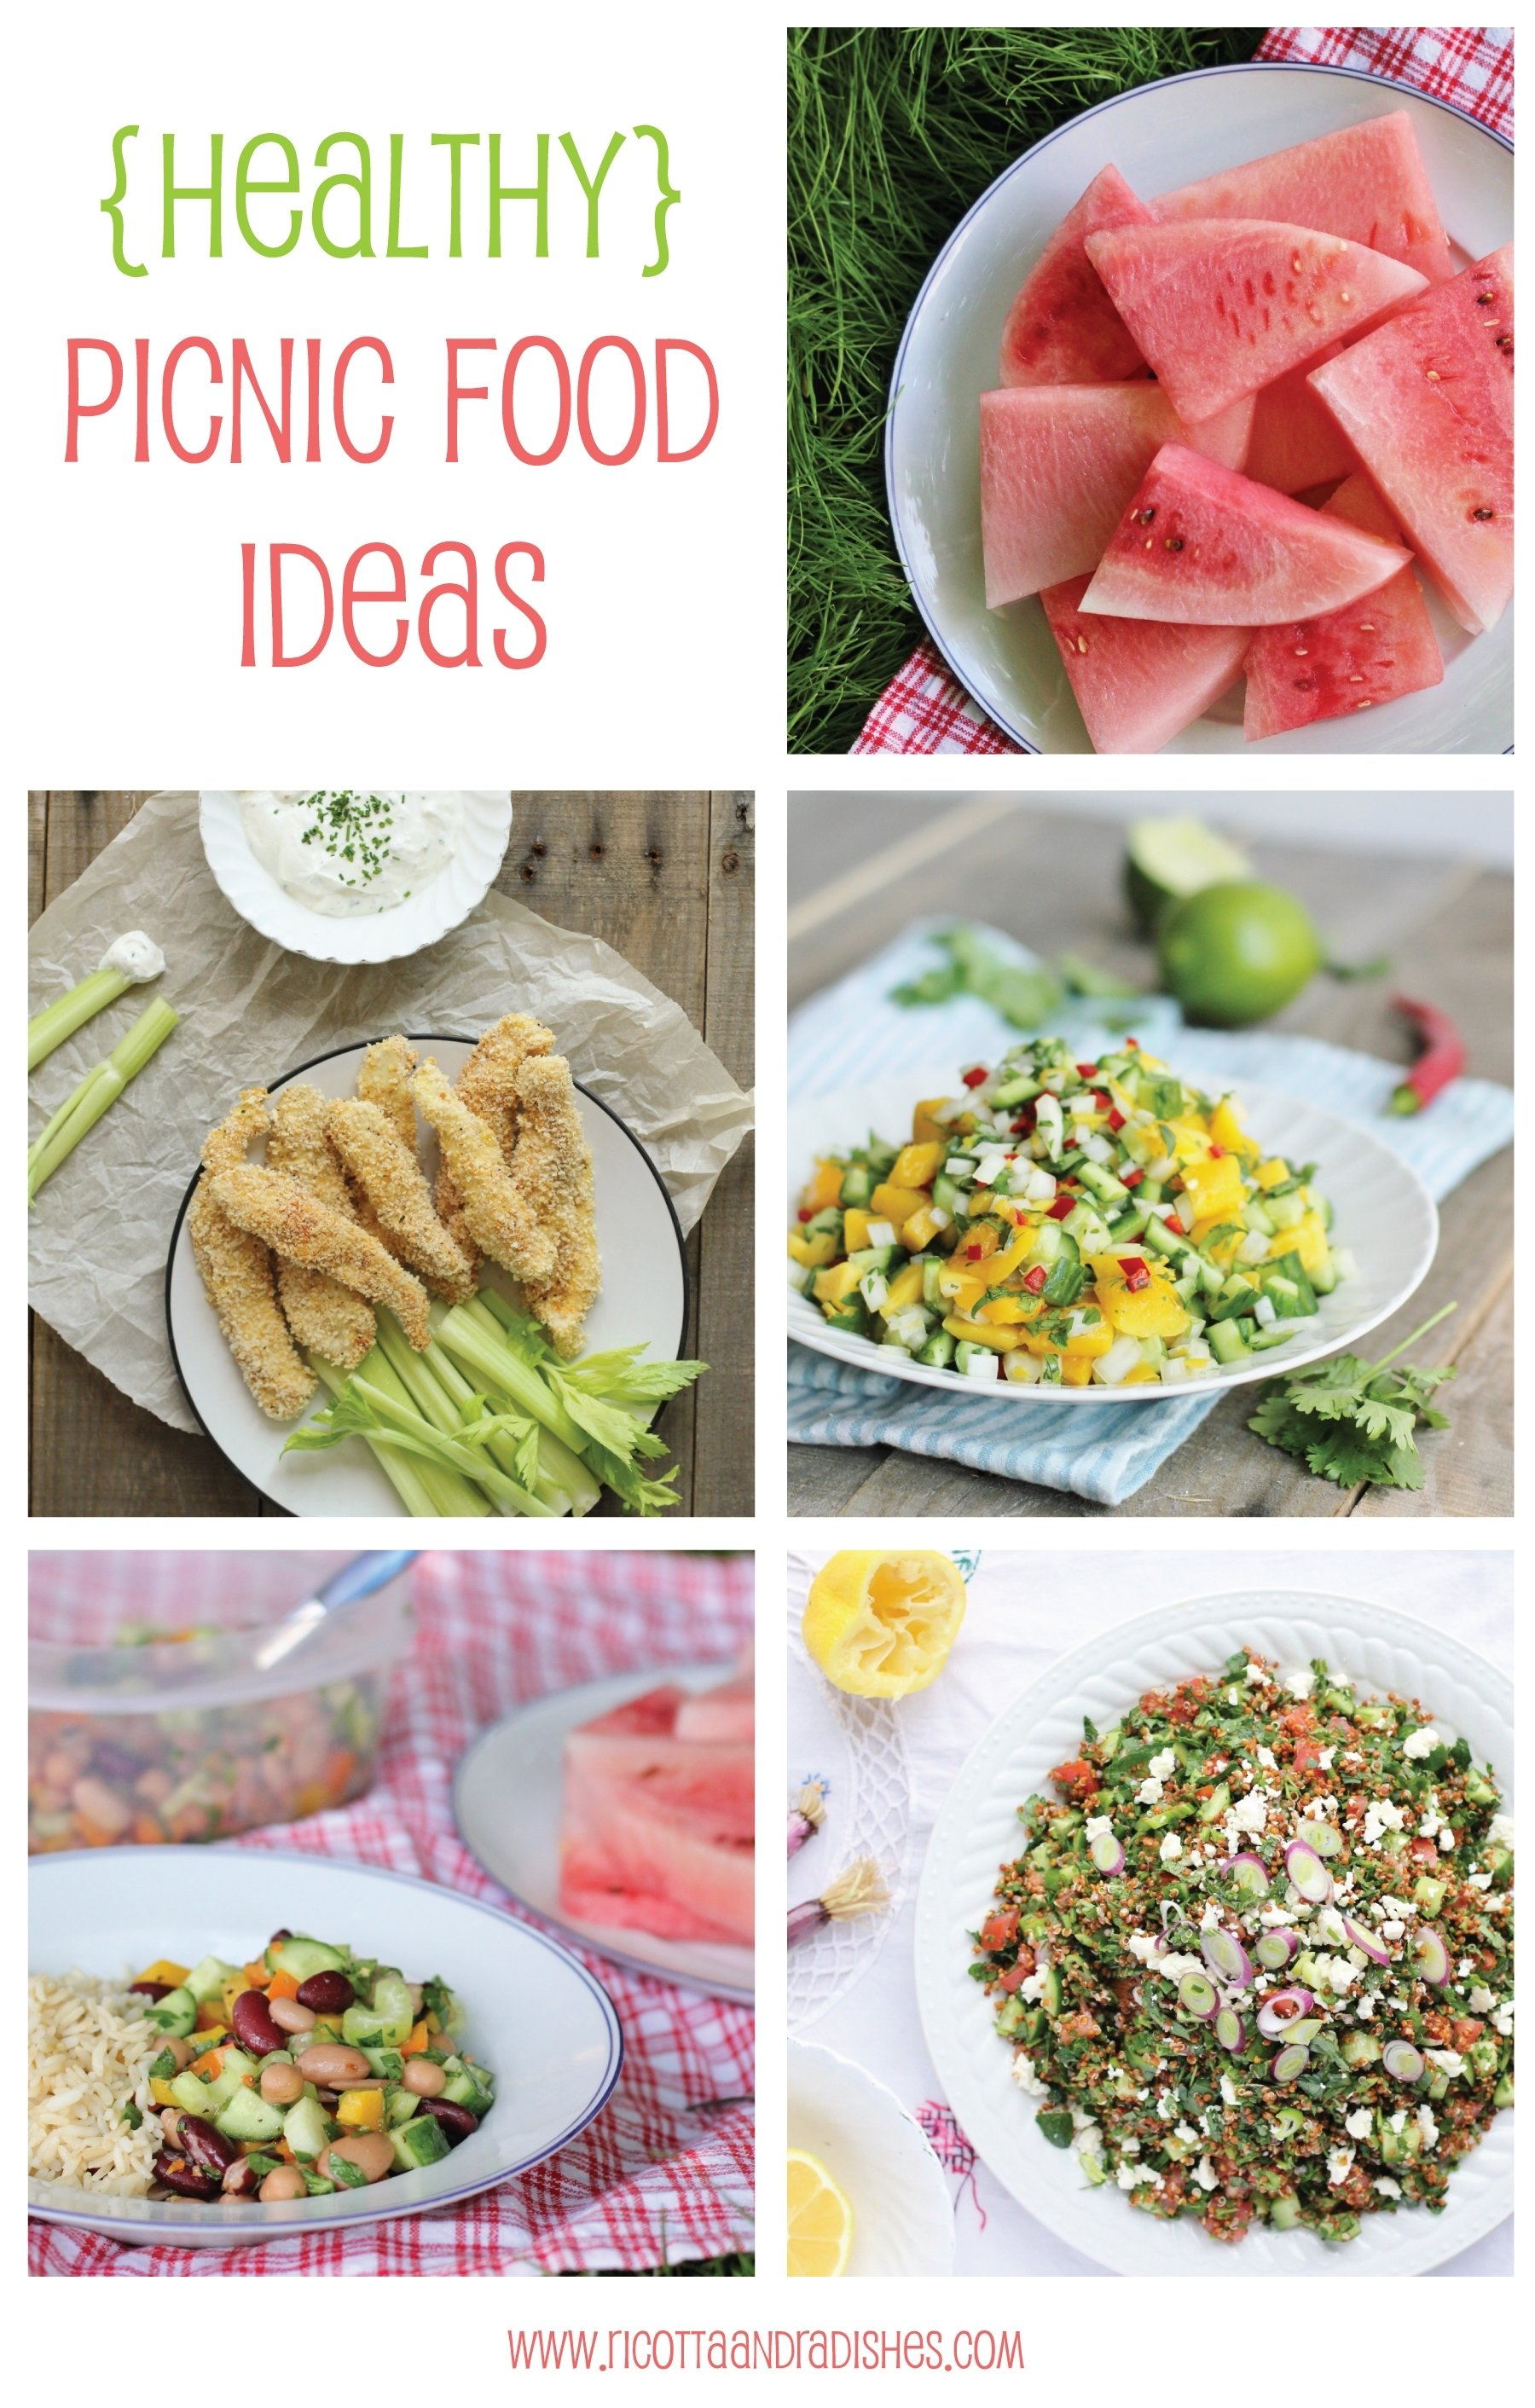 10 Perfect Food Ideas For A Picnic healthy picnic food ideas 2020